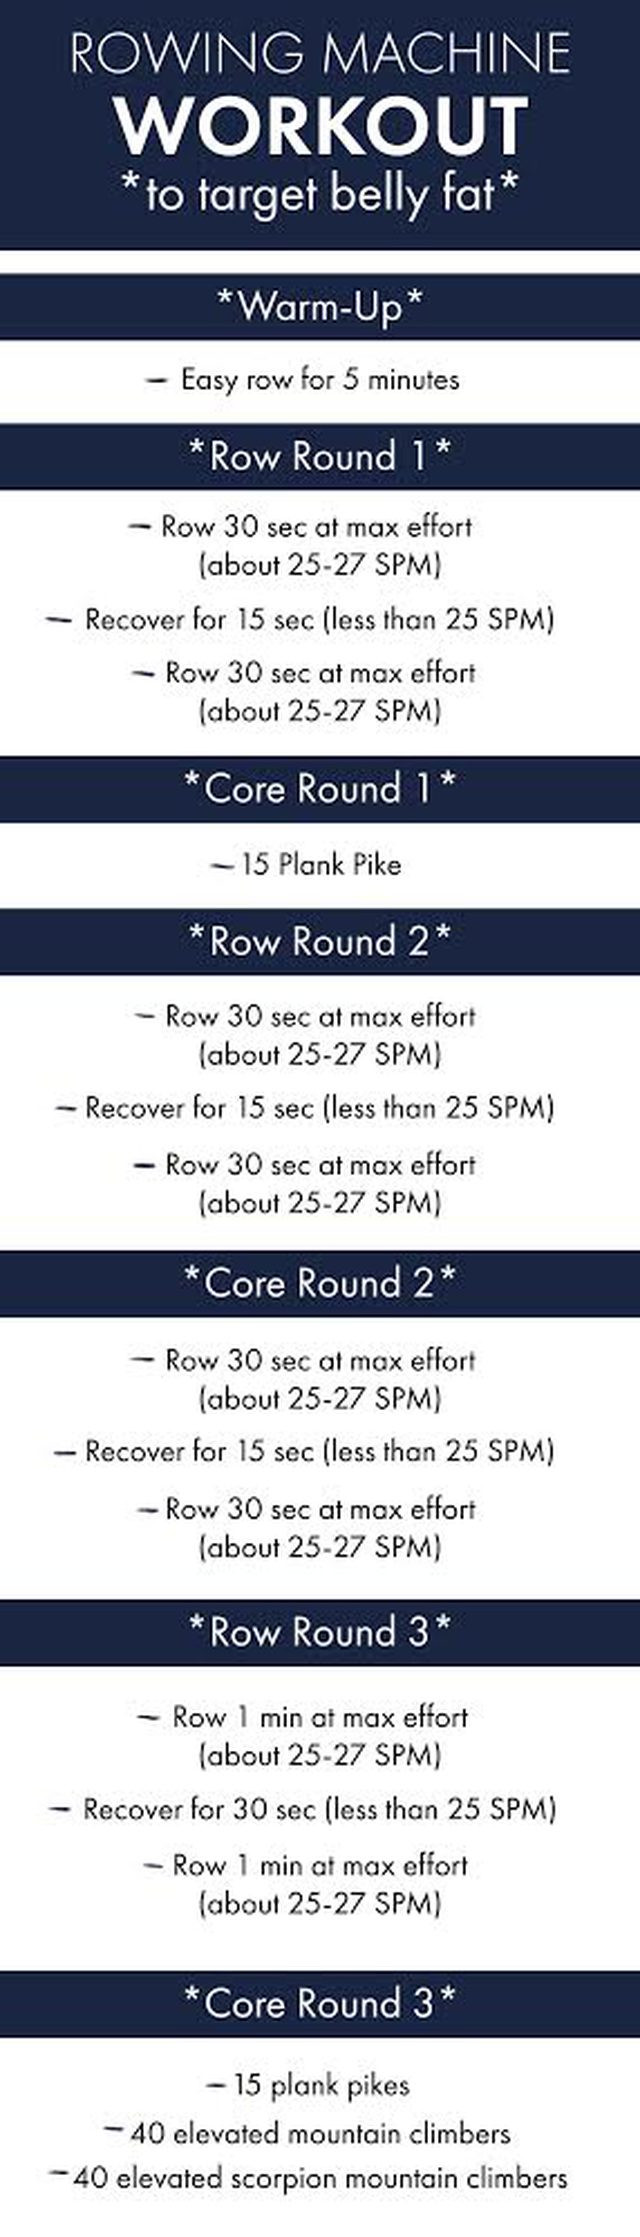 Stationary Row Workout